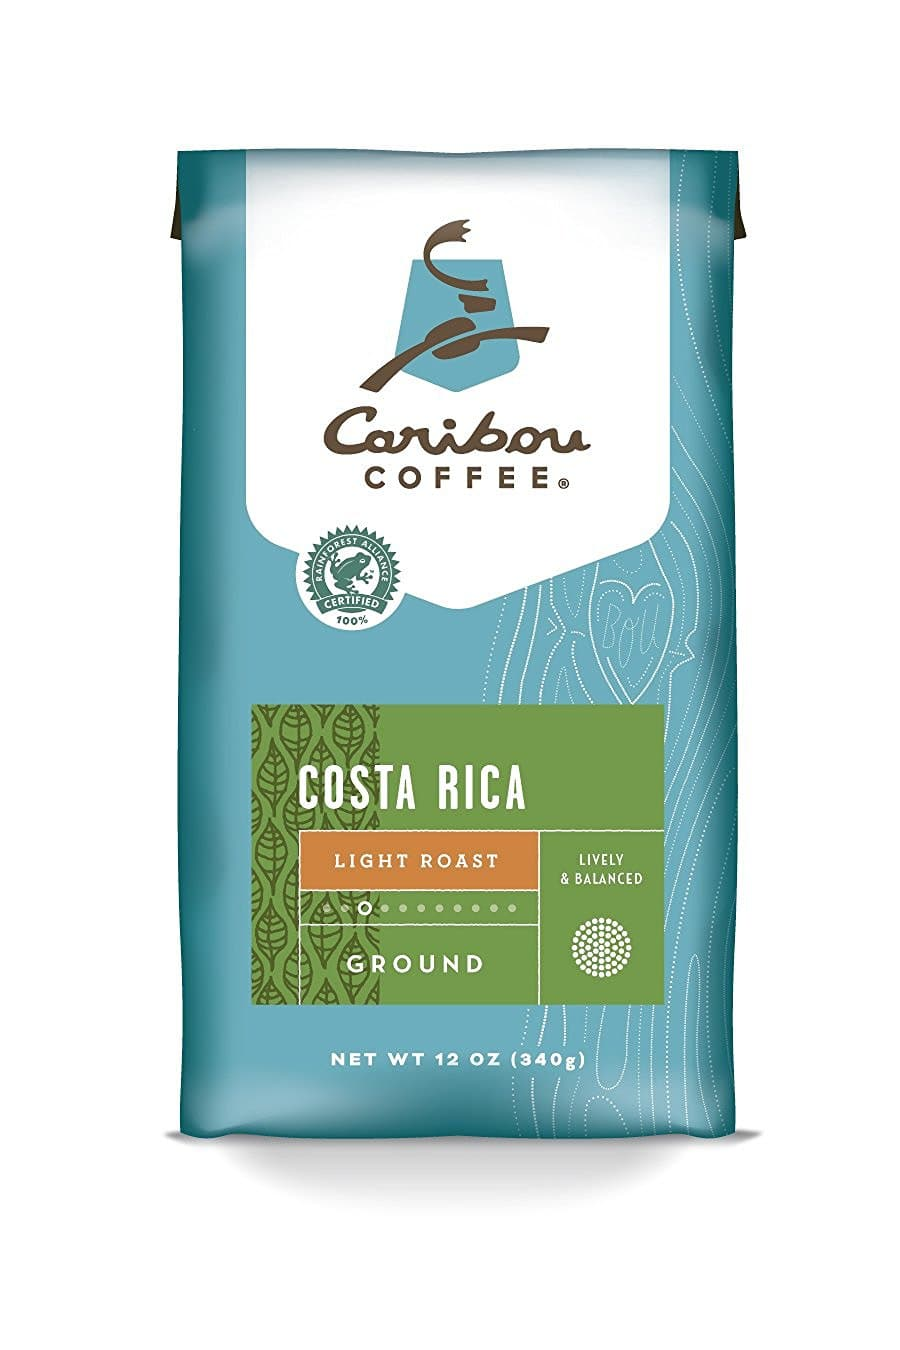 Caribou Coffee  - 12 Ounce Bag (Ground) - Costa Rica or Lacuna Blend - $4.48/4.58 AC & S&S ($3.73/$3.83 AC & 5 S&S Orders) - Amazon